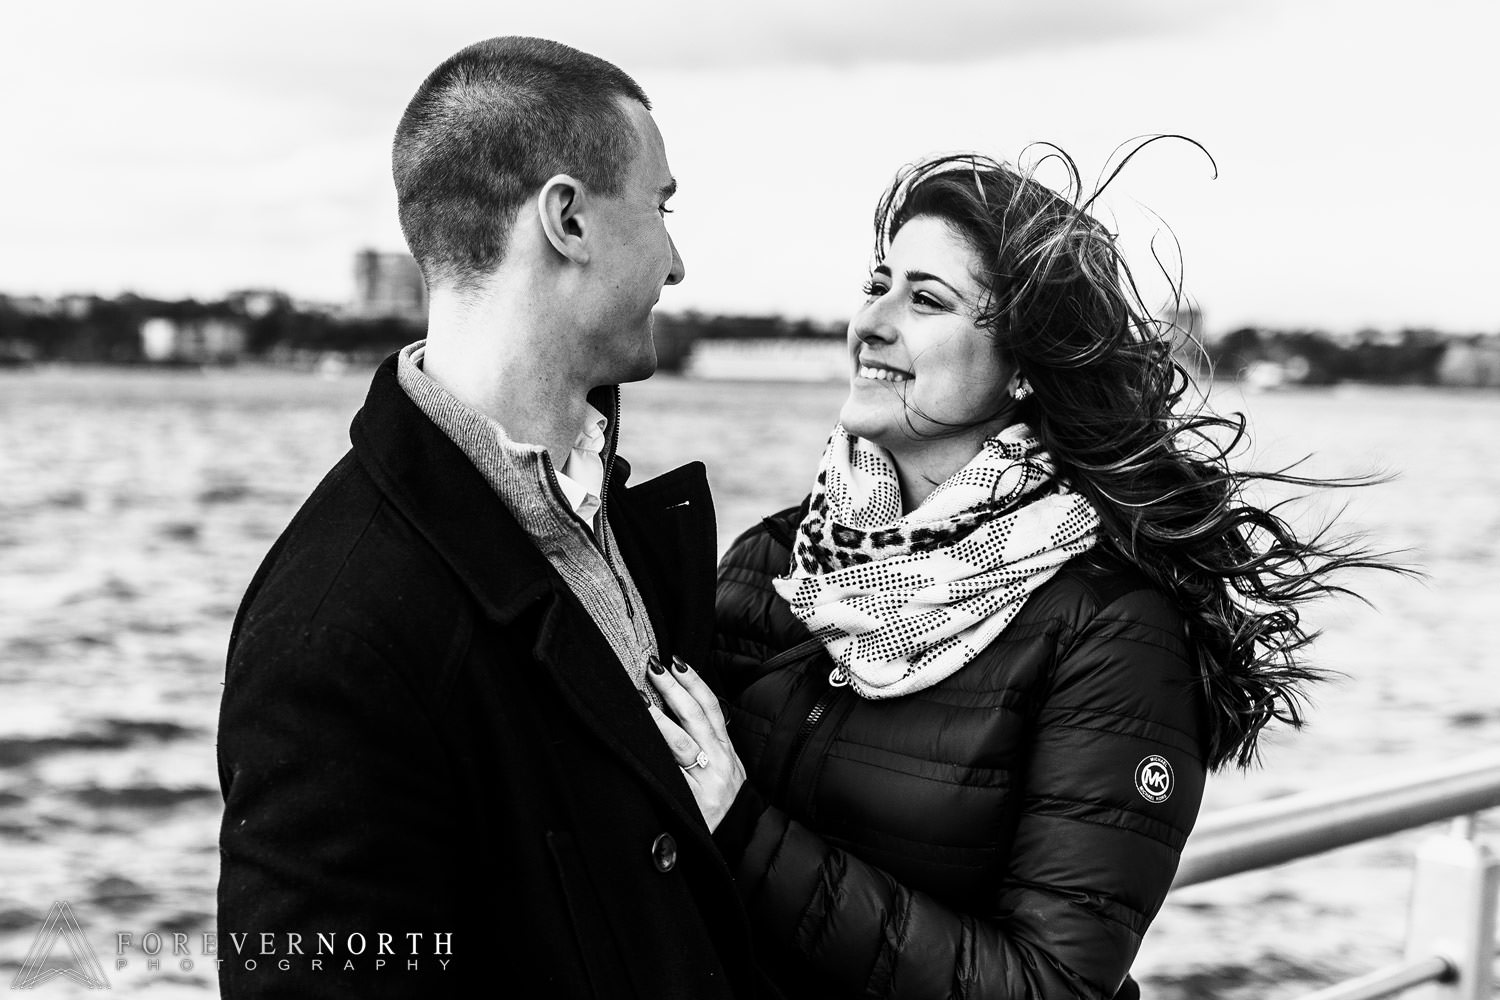 Cainero-Hudson-River-Park-Pier-62-New-York-Proposal-Engagement-Photographer-02.JPG